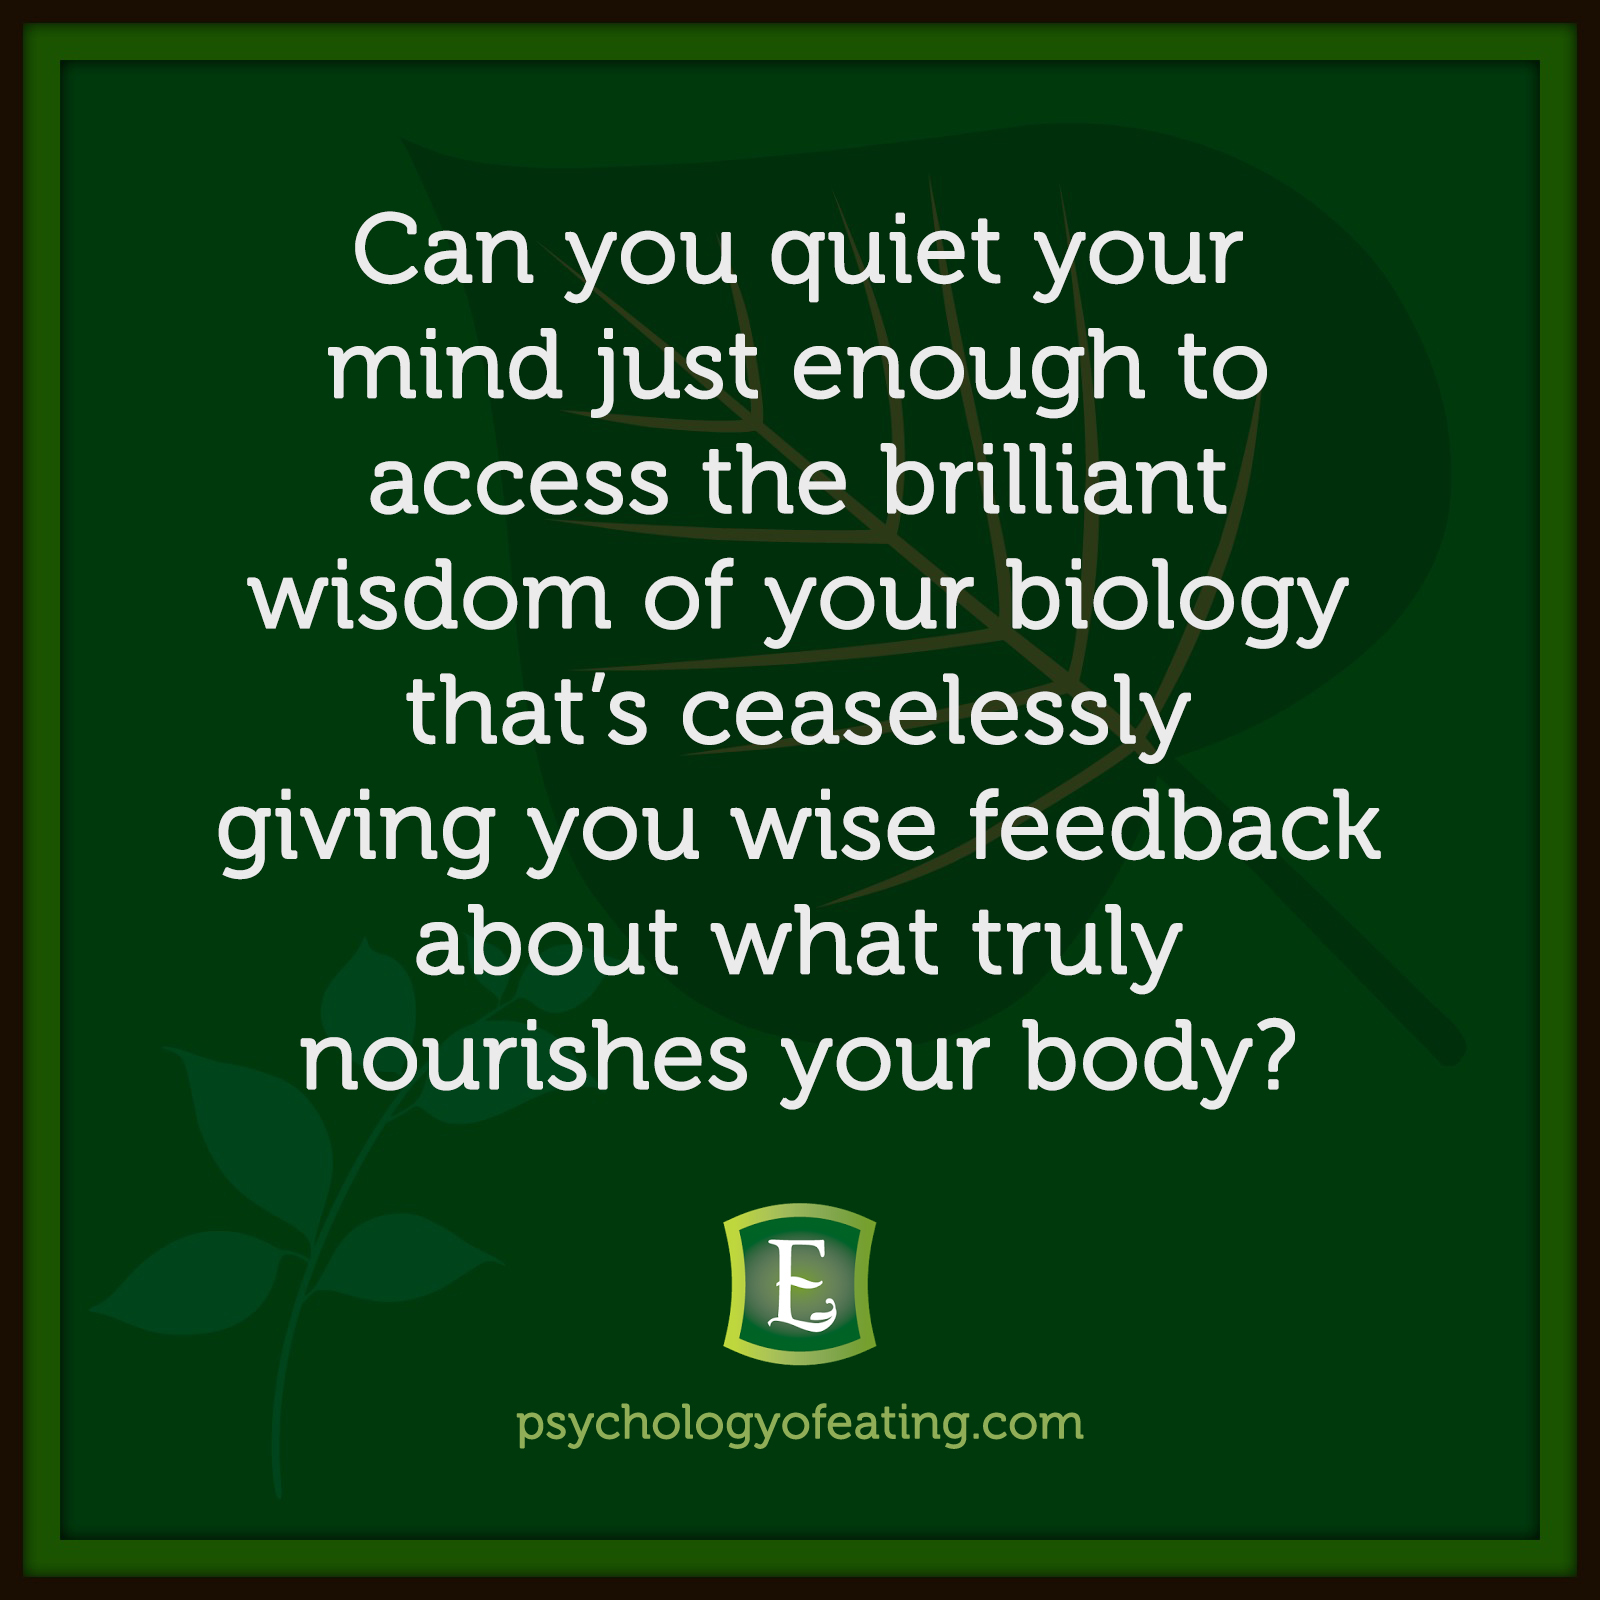 Can you quiet your mind just enough to access the brilliant wisdom of your biology that's ceaselessly giving you wise feedback about what truly nourishes your body? #health #nutrition #eatingpsychology #IPE